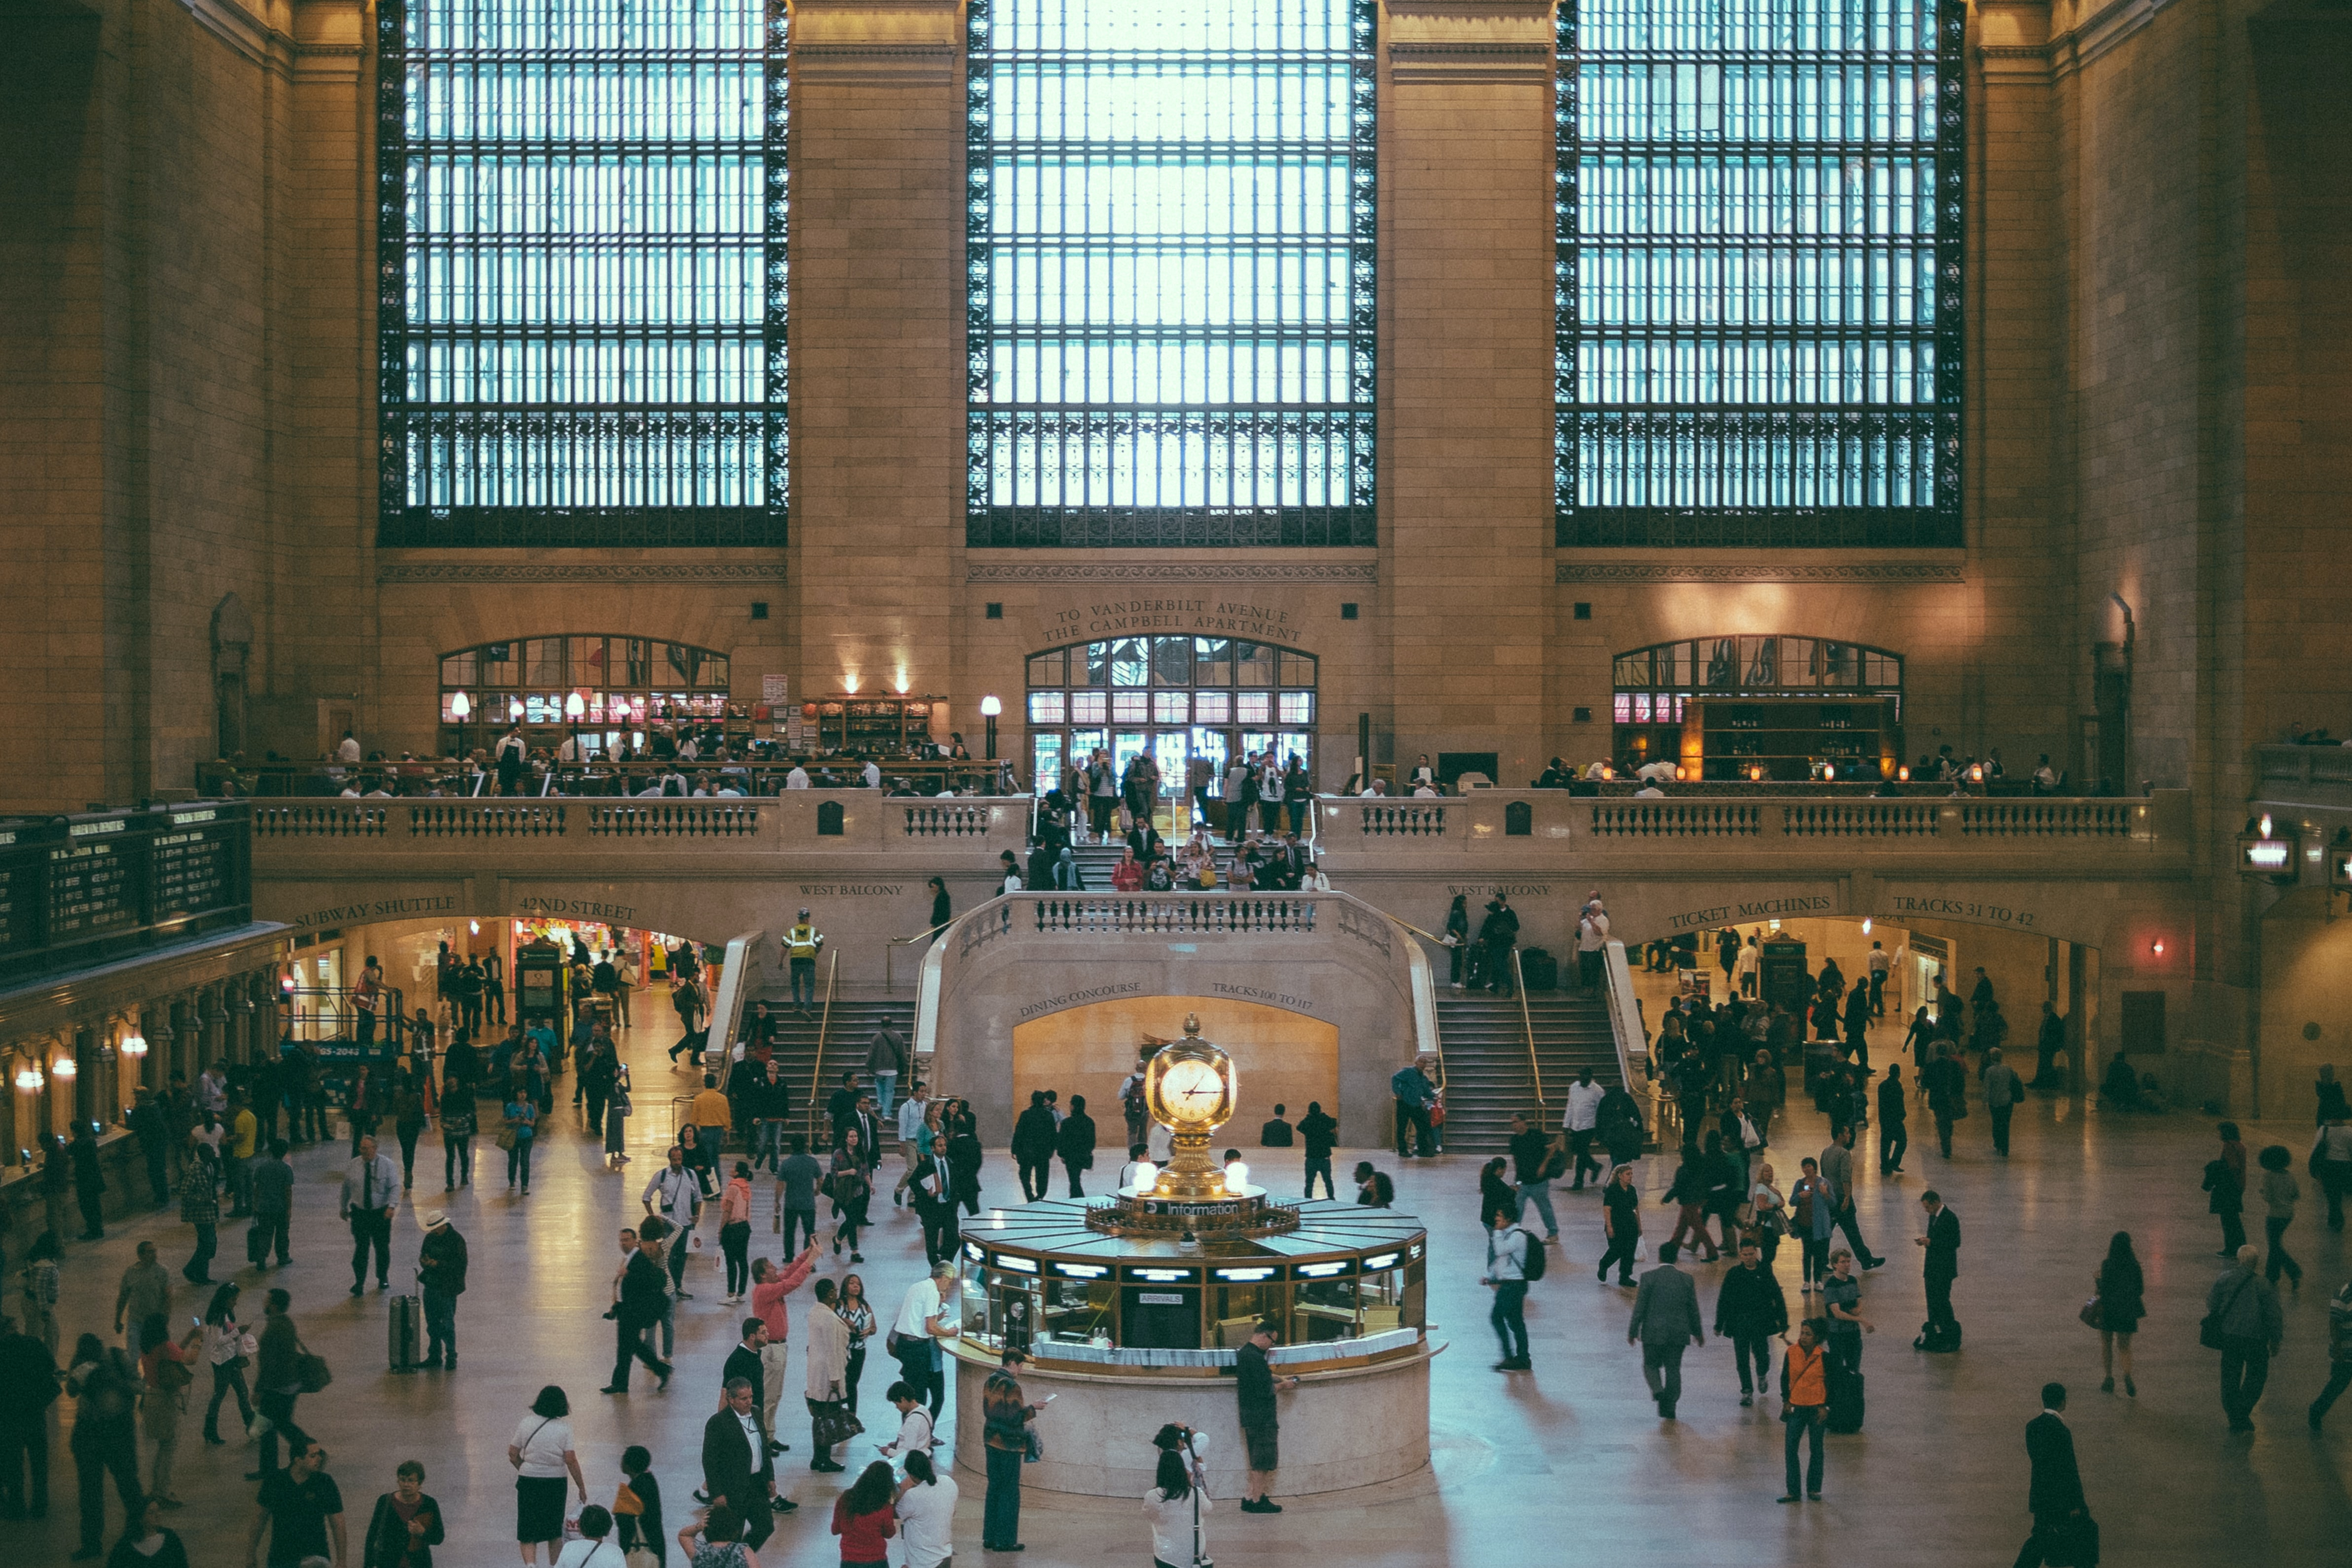 The crowded interior of Grand Central Terminal in New York